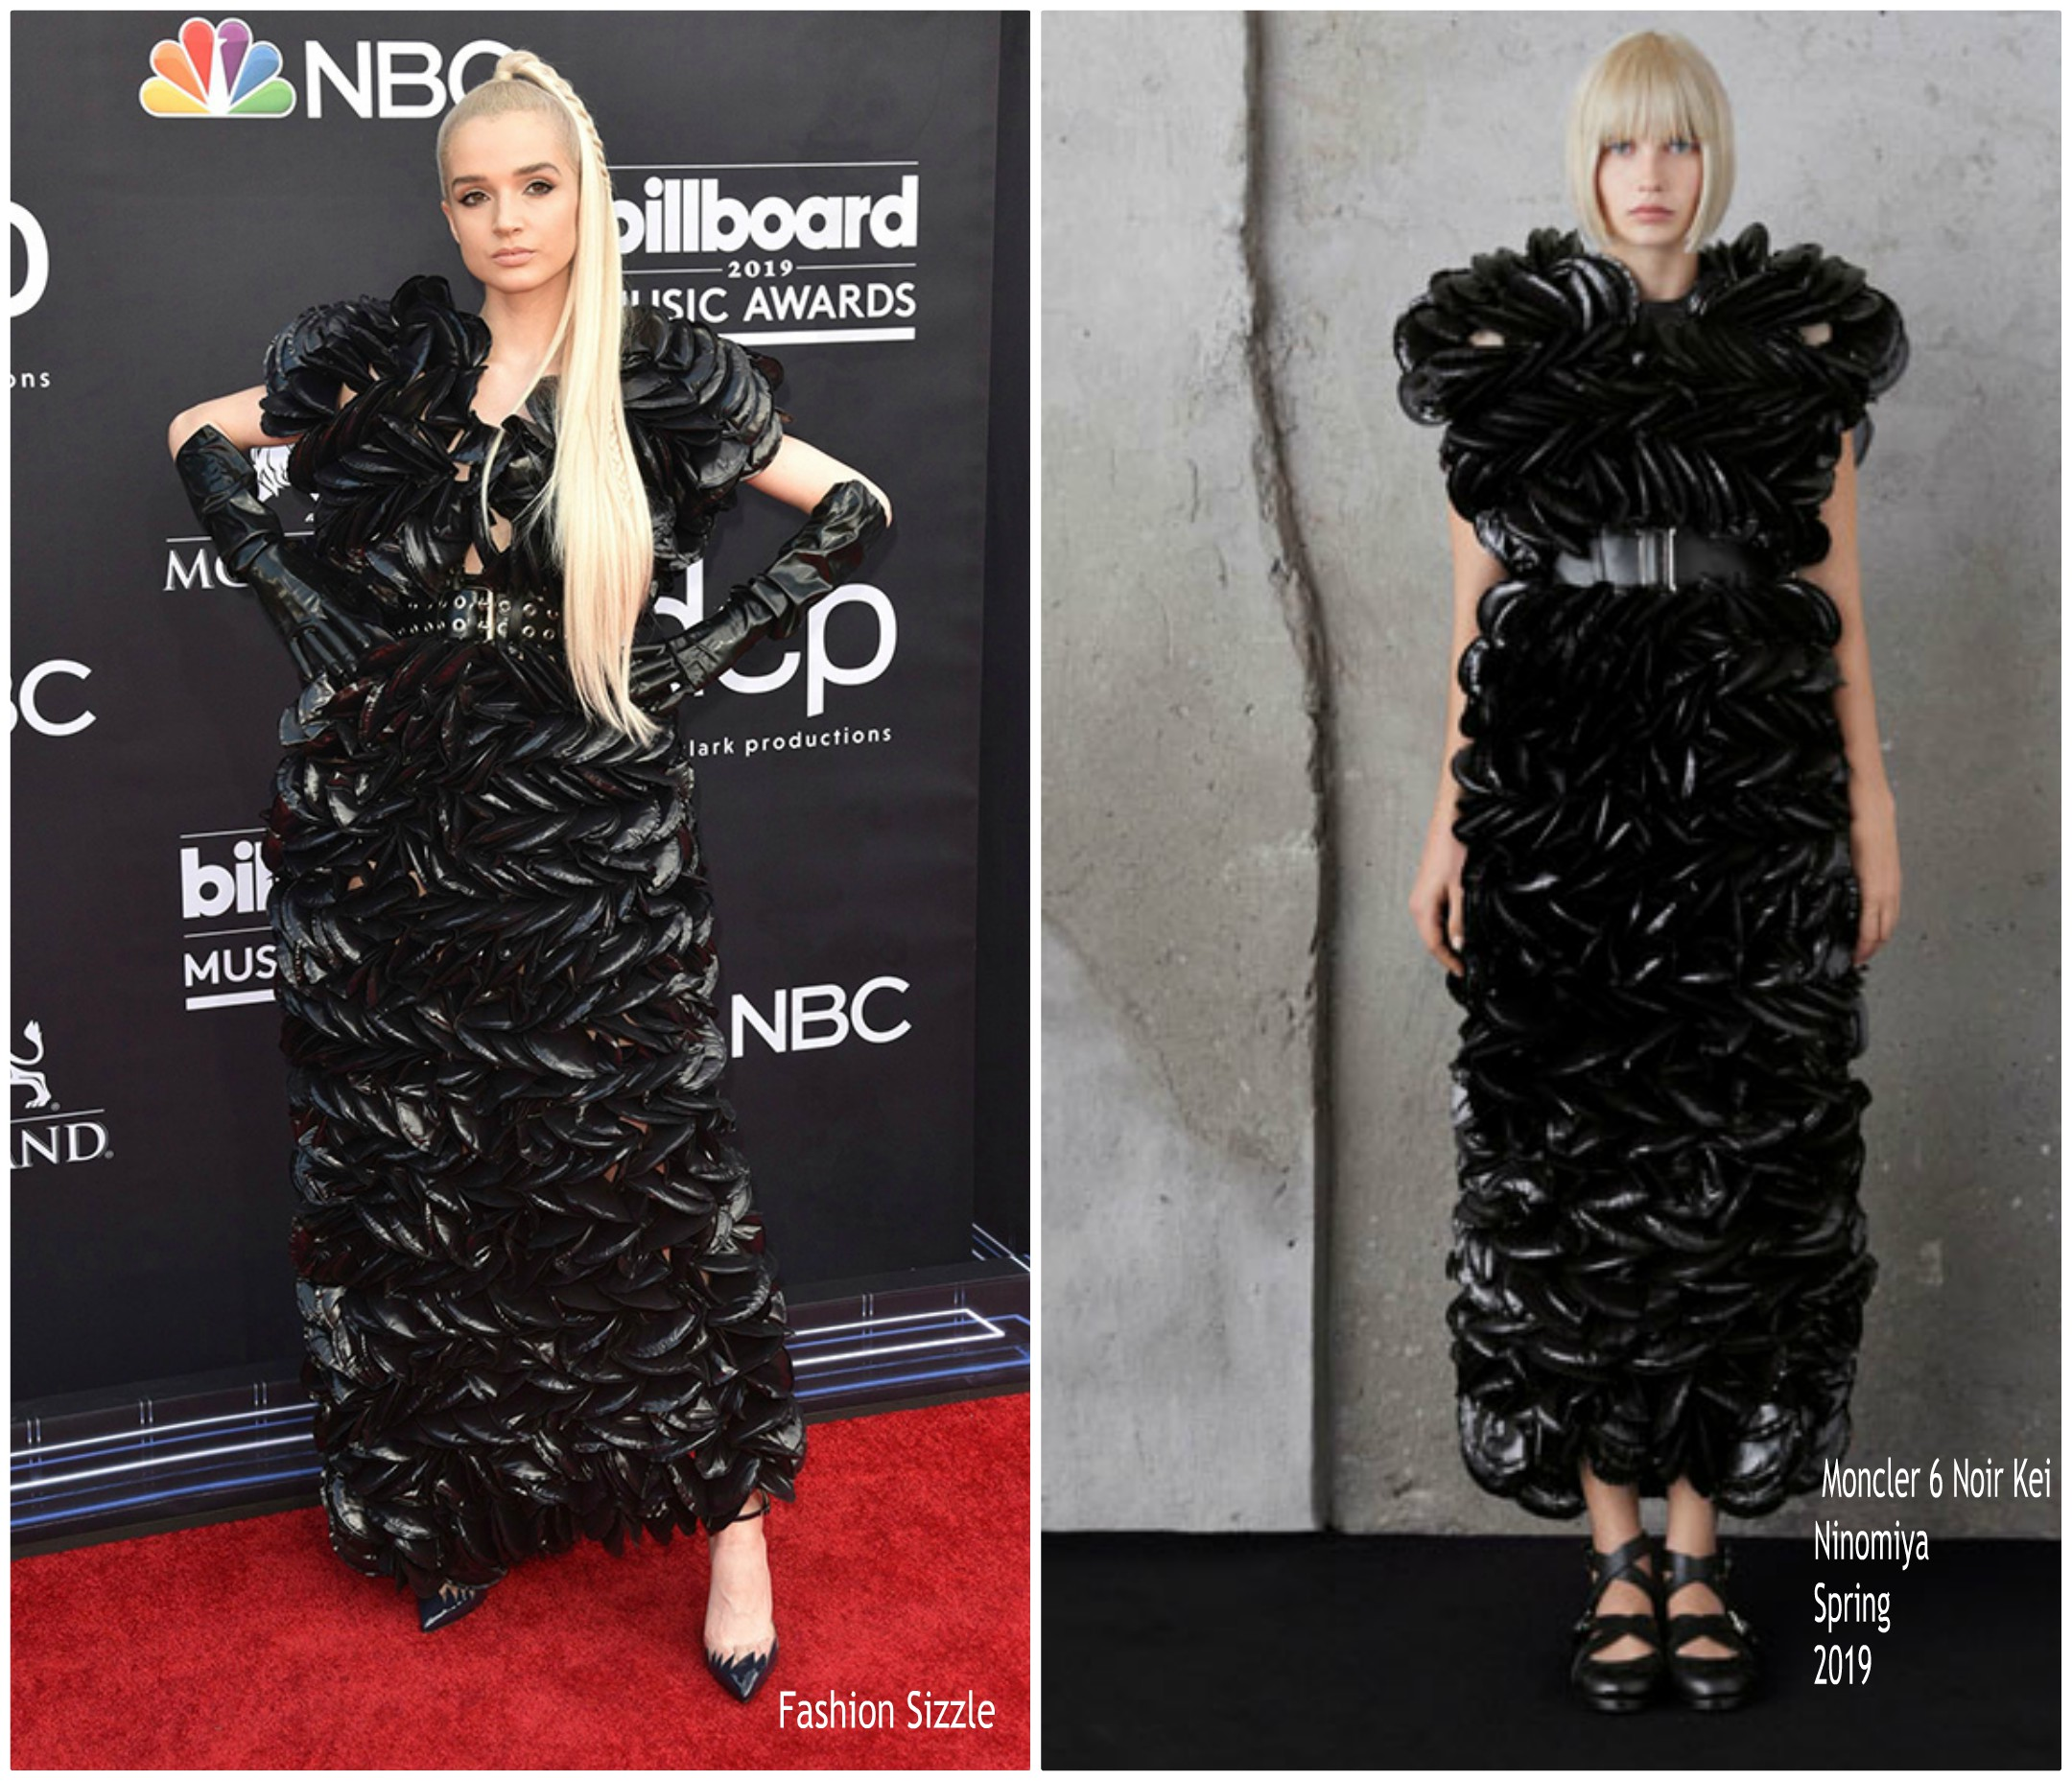 poppy-in-moncler-6-noir-kei-ninomiya-2019-billboard-music-awards